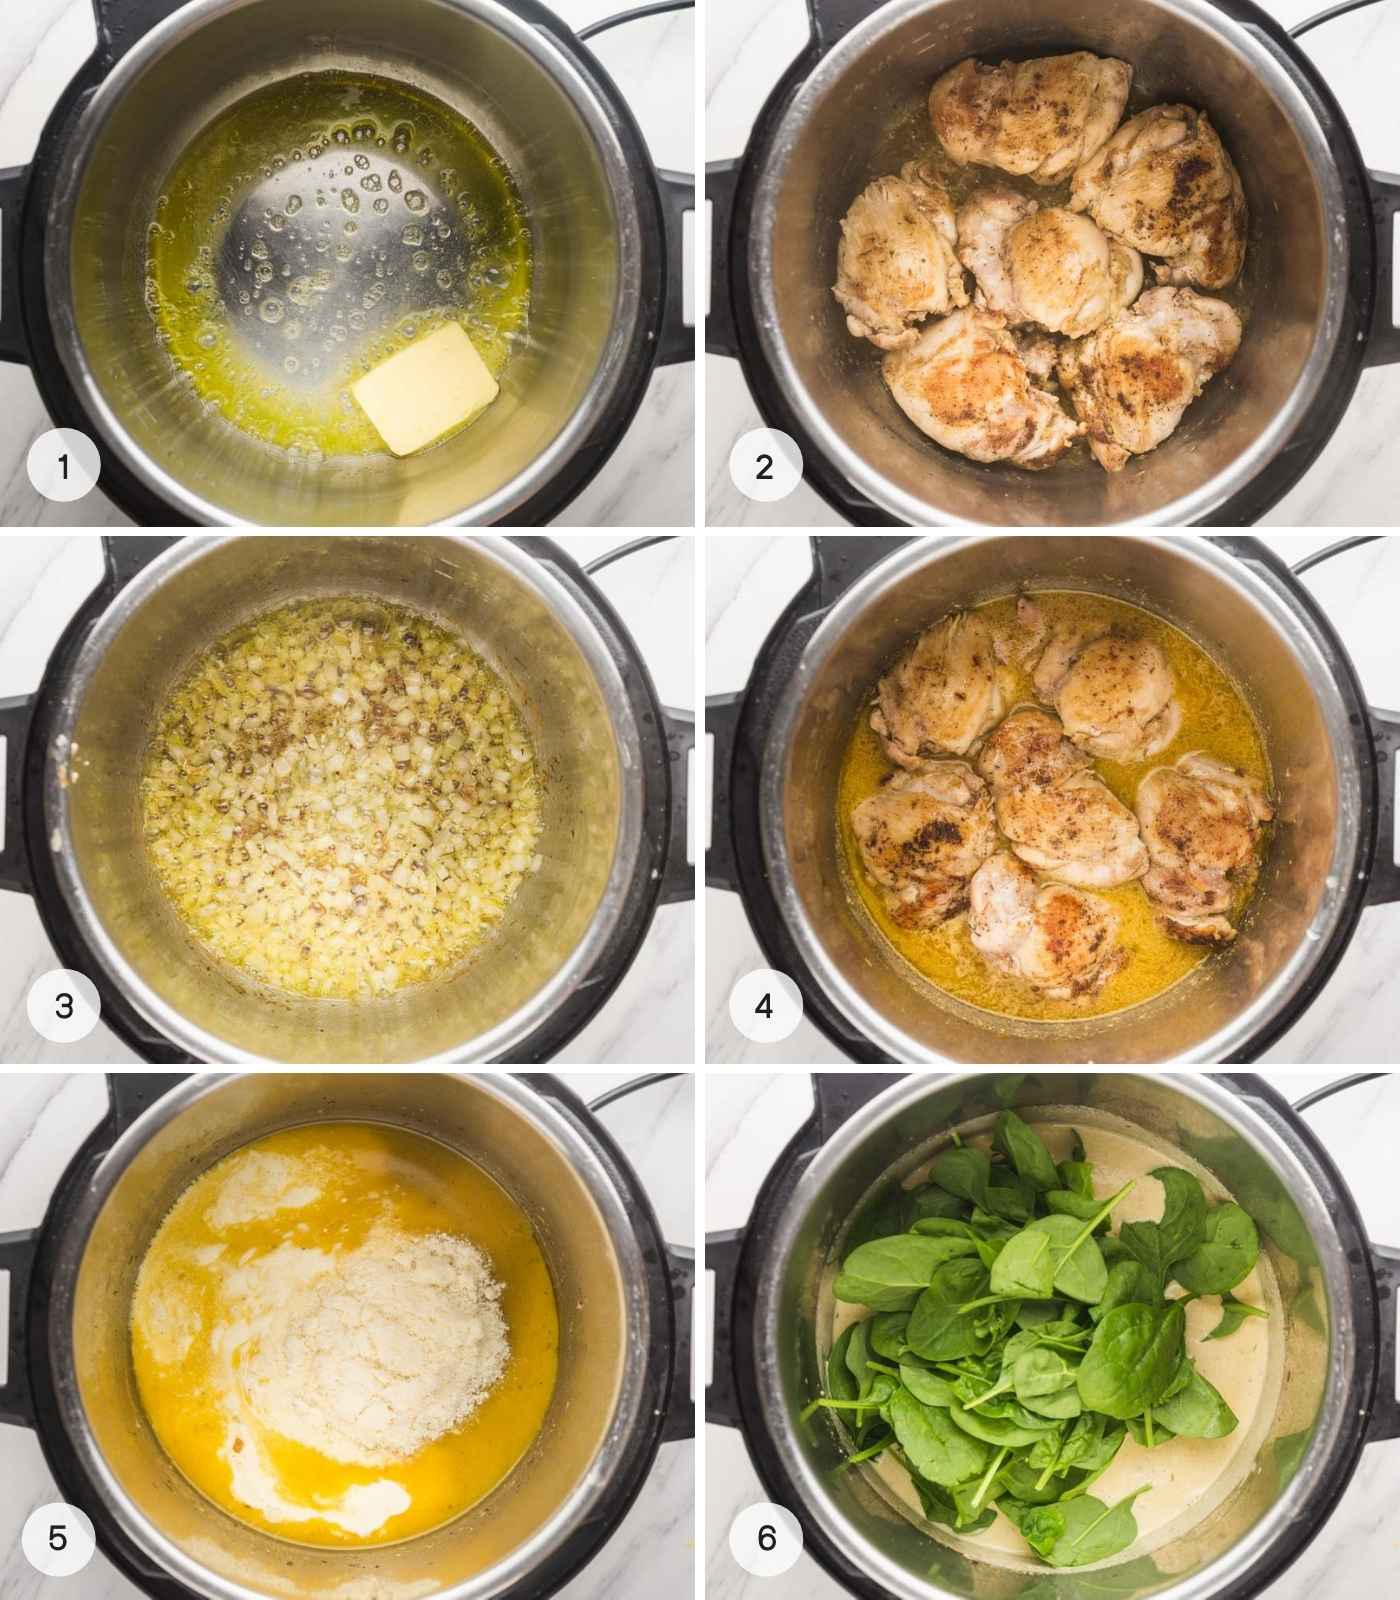 Steps on how to make mustard chicken in the instant pot